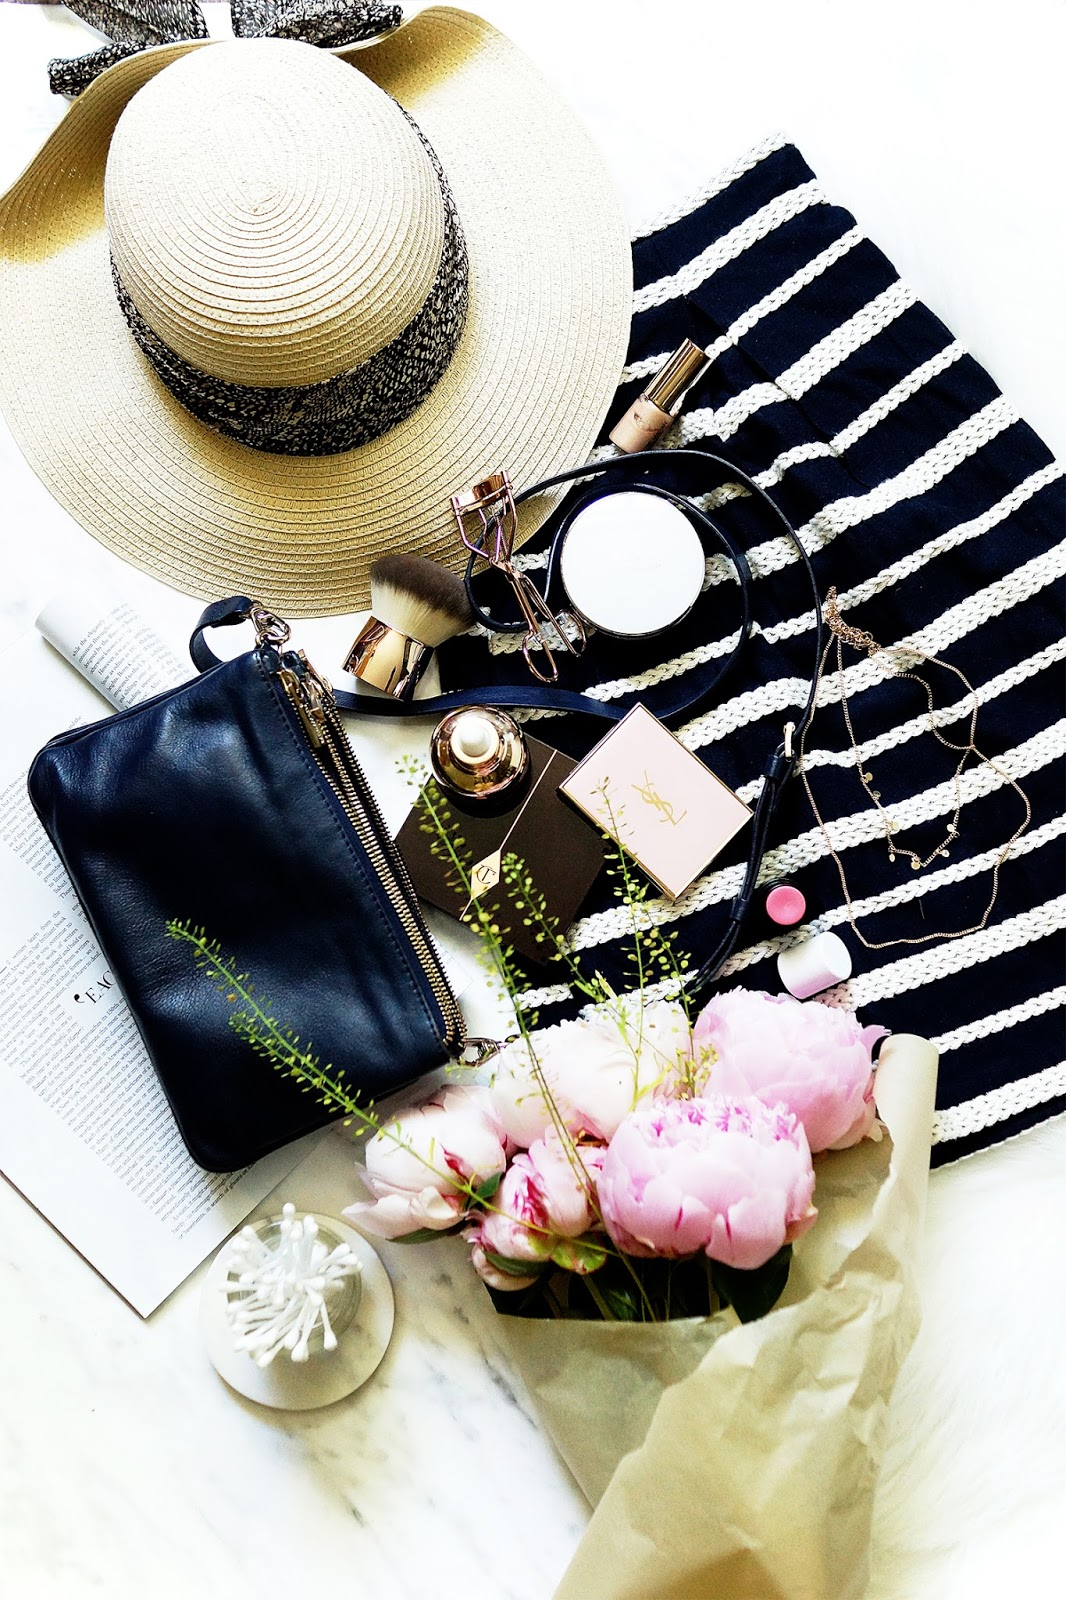 Barely-There-Beauty-blog-lifestyle-flatlay-photography